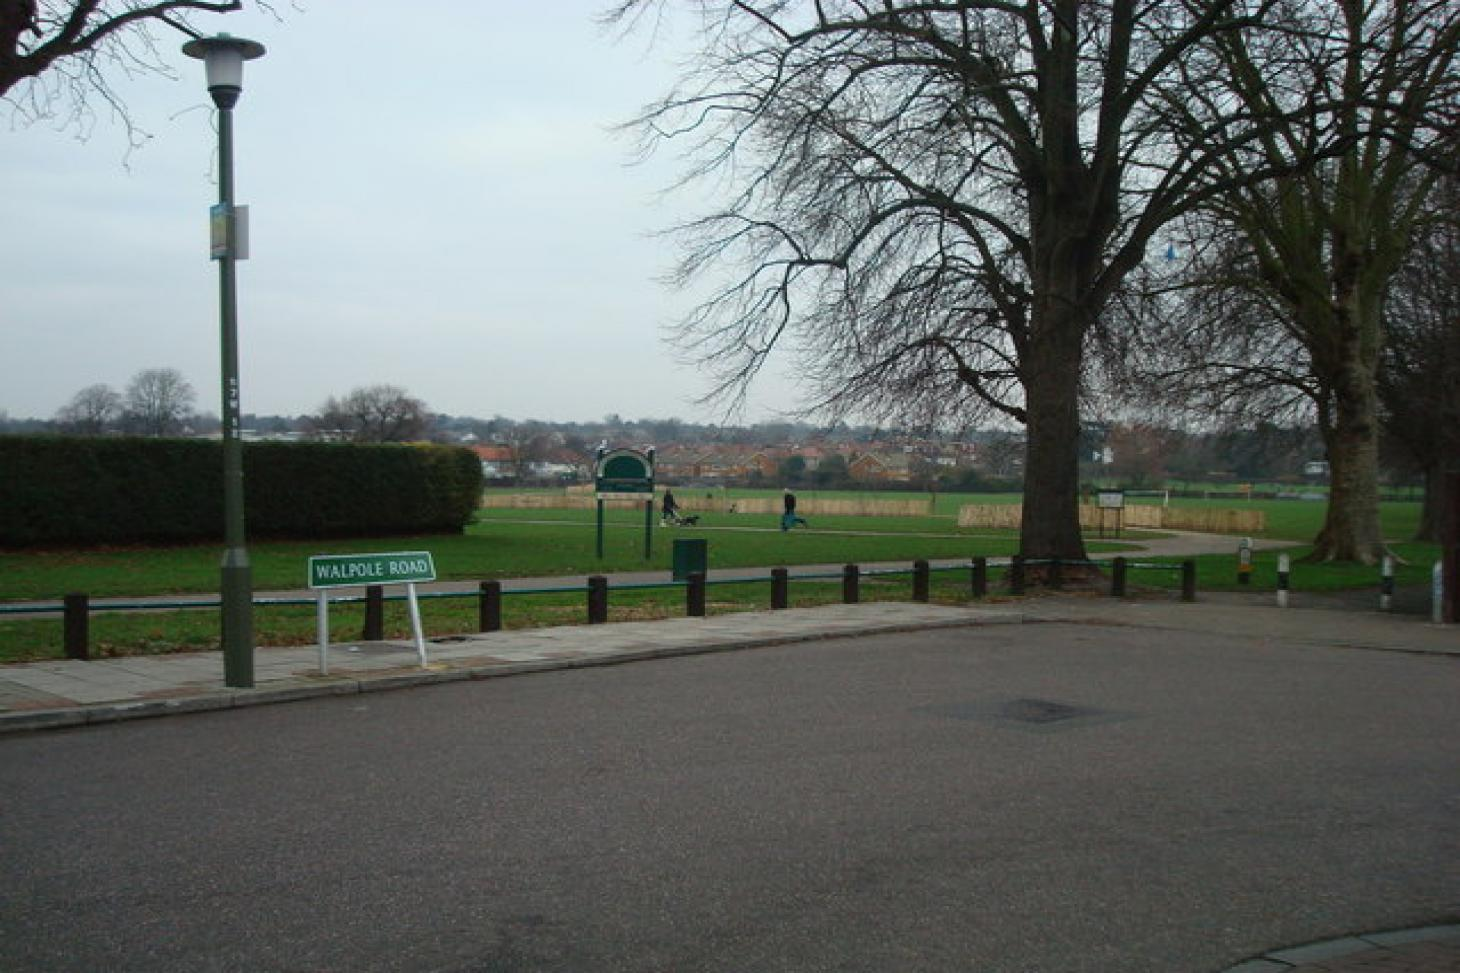 Whitehall Recreation Ground 11 a side | Grass football pitch